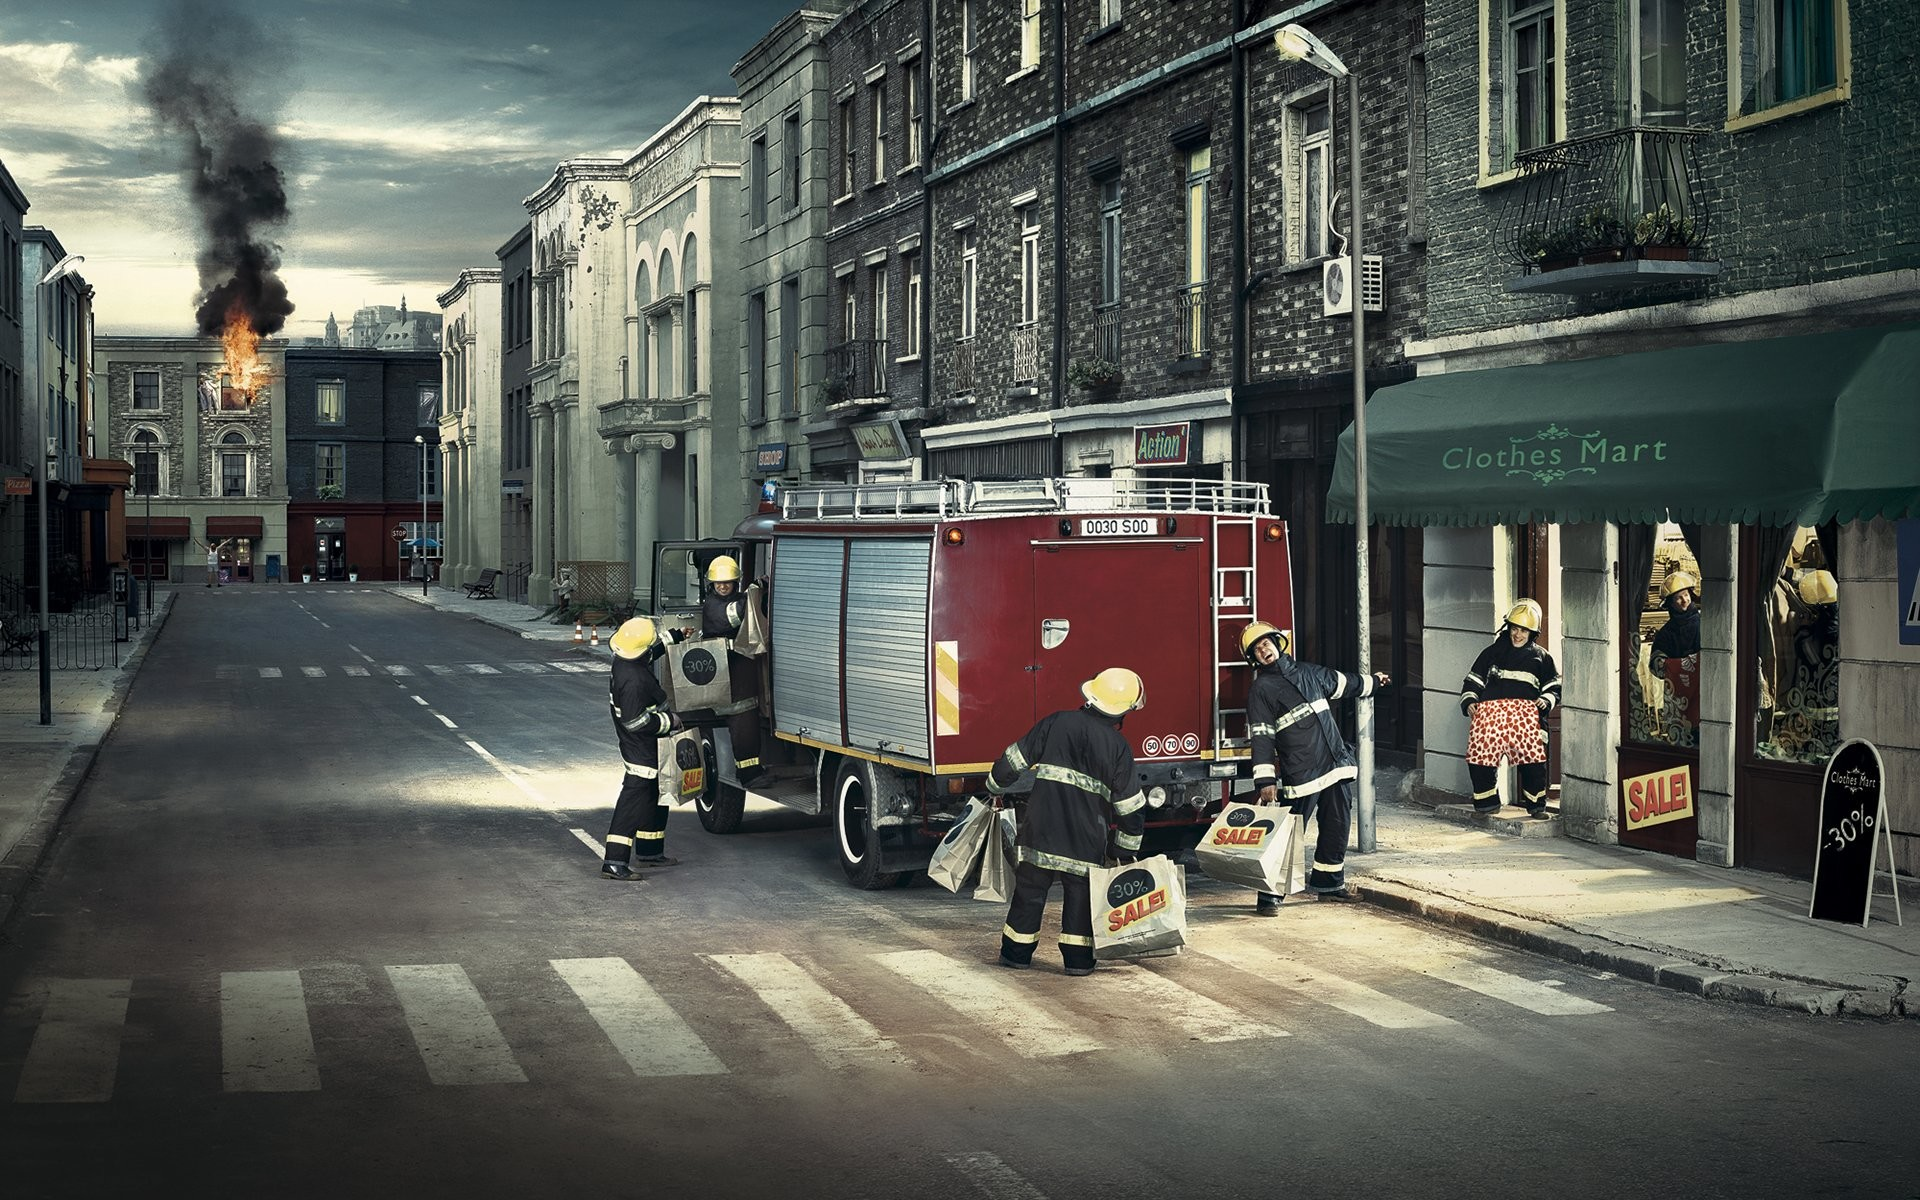 firefighter wallpapers wallpaperup; fireman live images hd wallpapers  bsnscb; you have to be unique and diffe walldevil …